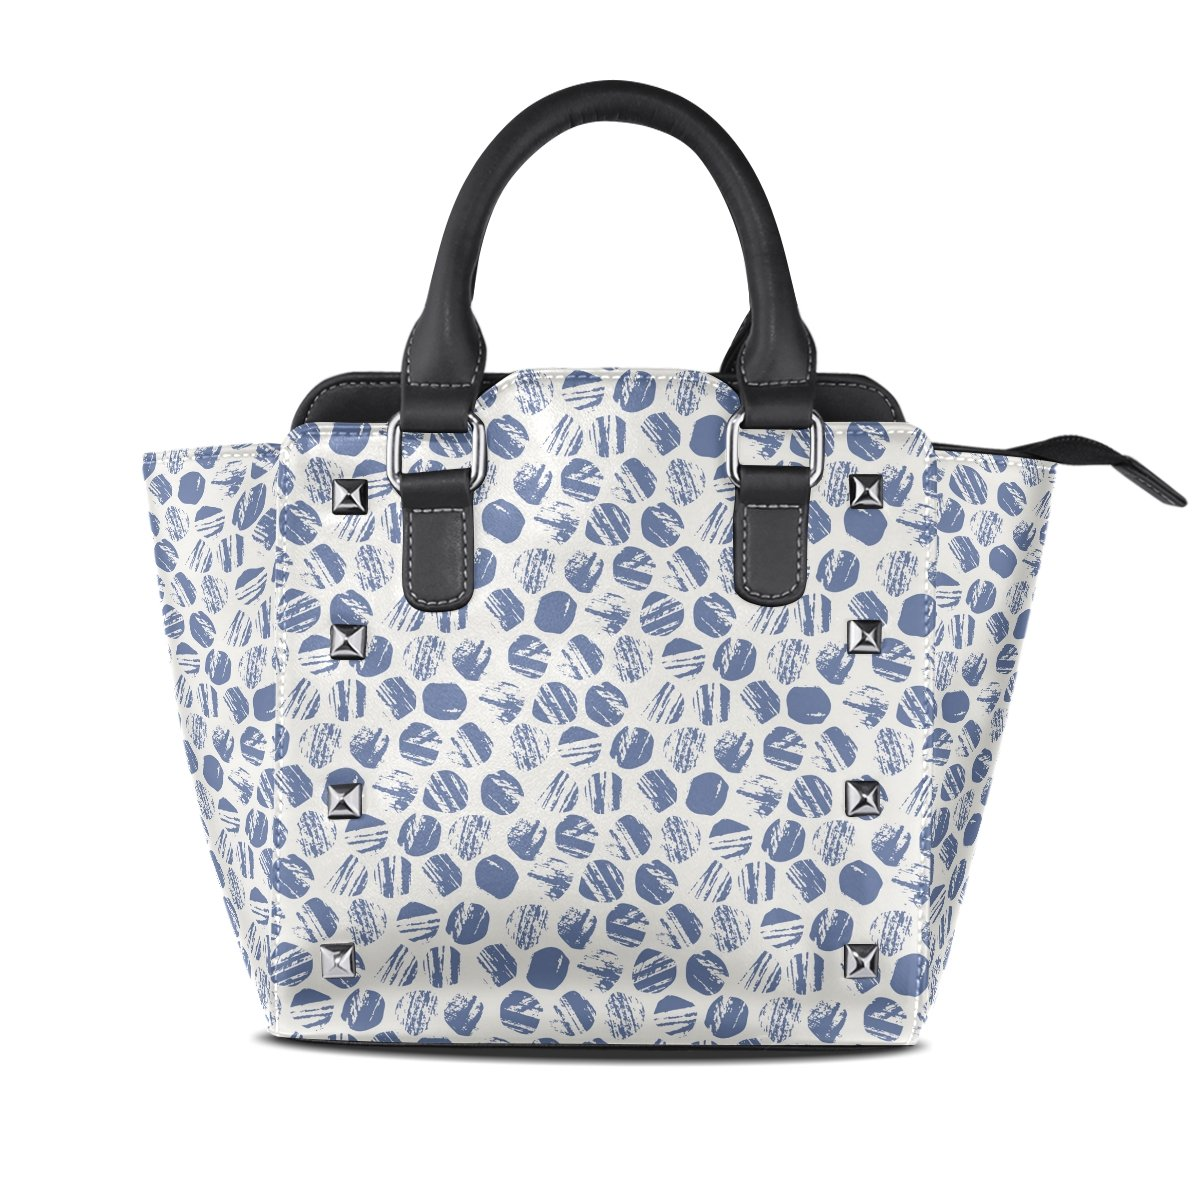 Womens Genuine Leather Hangbags Tote Bags Floral Pattern Purse Shoulder Bags